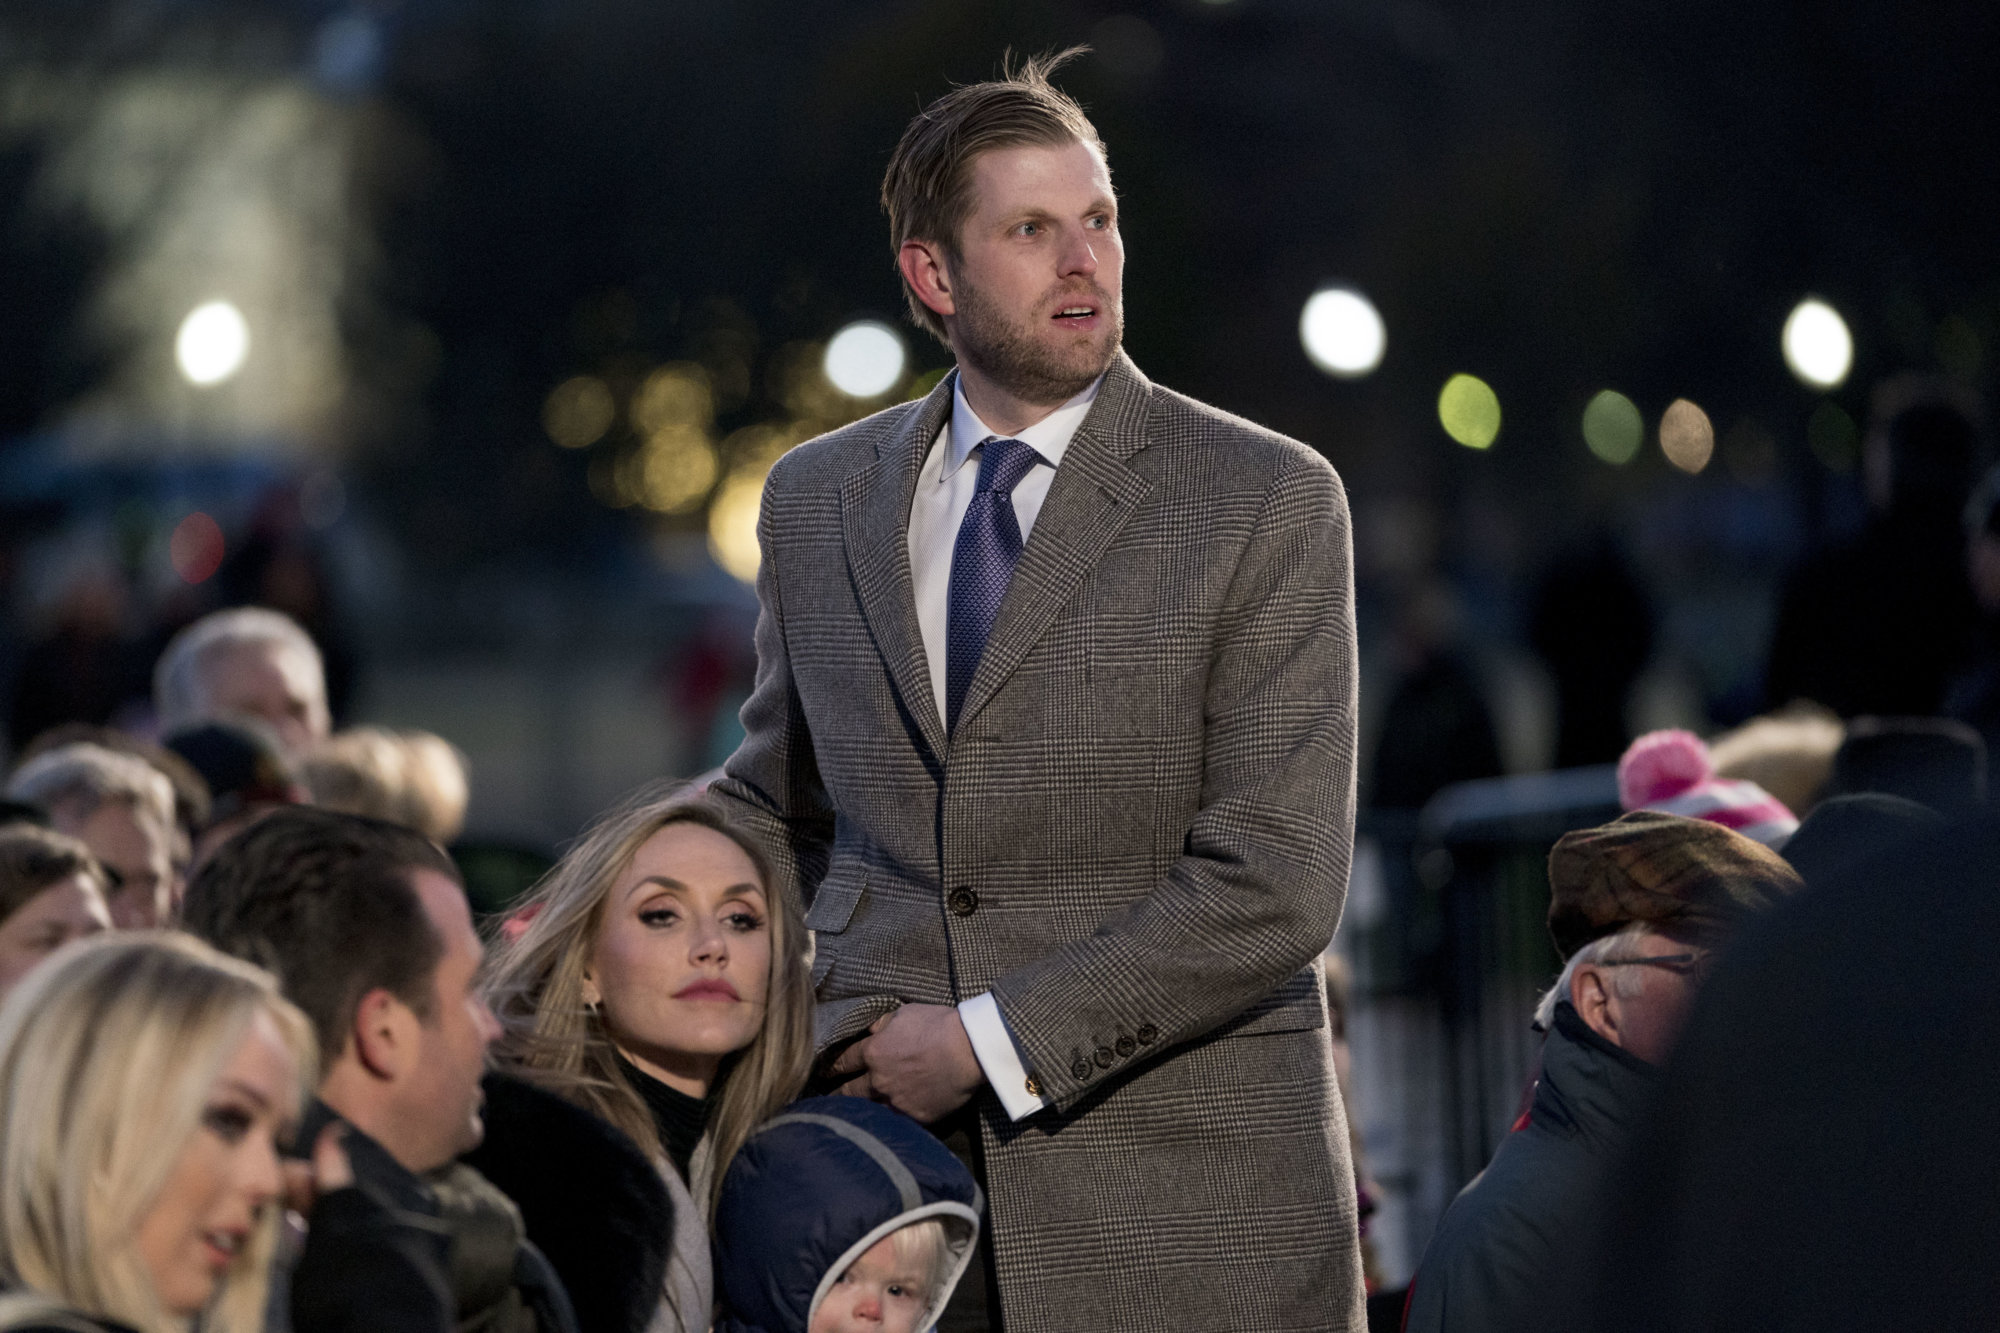 Eric Trump, the son of President Donald Trump and his wife Lara Trump arrive ahead of President Donald Trump and first lady Melania Trump at the National Christmas Tree lighting ceremony at the Ellipse near the White House in Washington, Wednesday, Nov. 28, 2018. (AP Photo/Andrew Harnik)